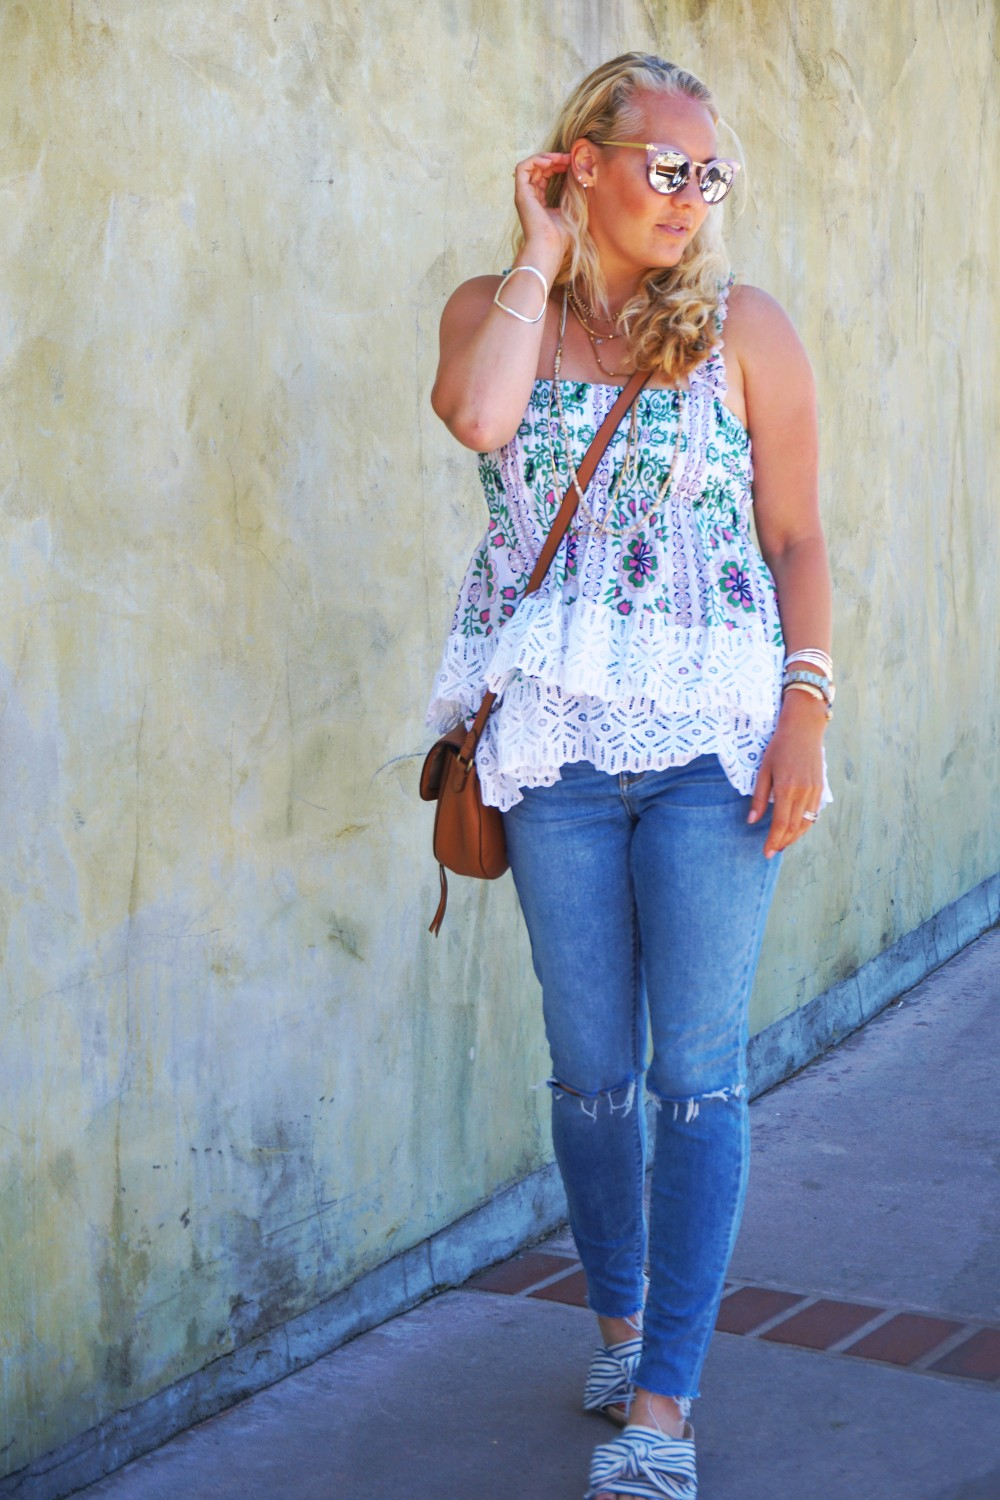 Tiered Babydoll Top-Lace Trim Silk Georgette Top by Tory Burch-Spring Outfit Inspiration-Bay Area Fashion Blogger-Weekend Style-Have Need Want